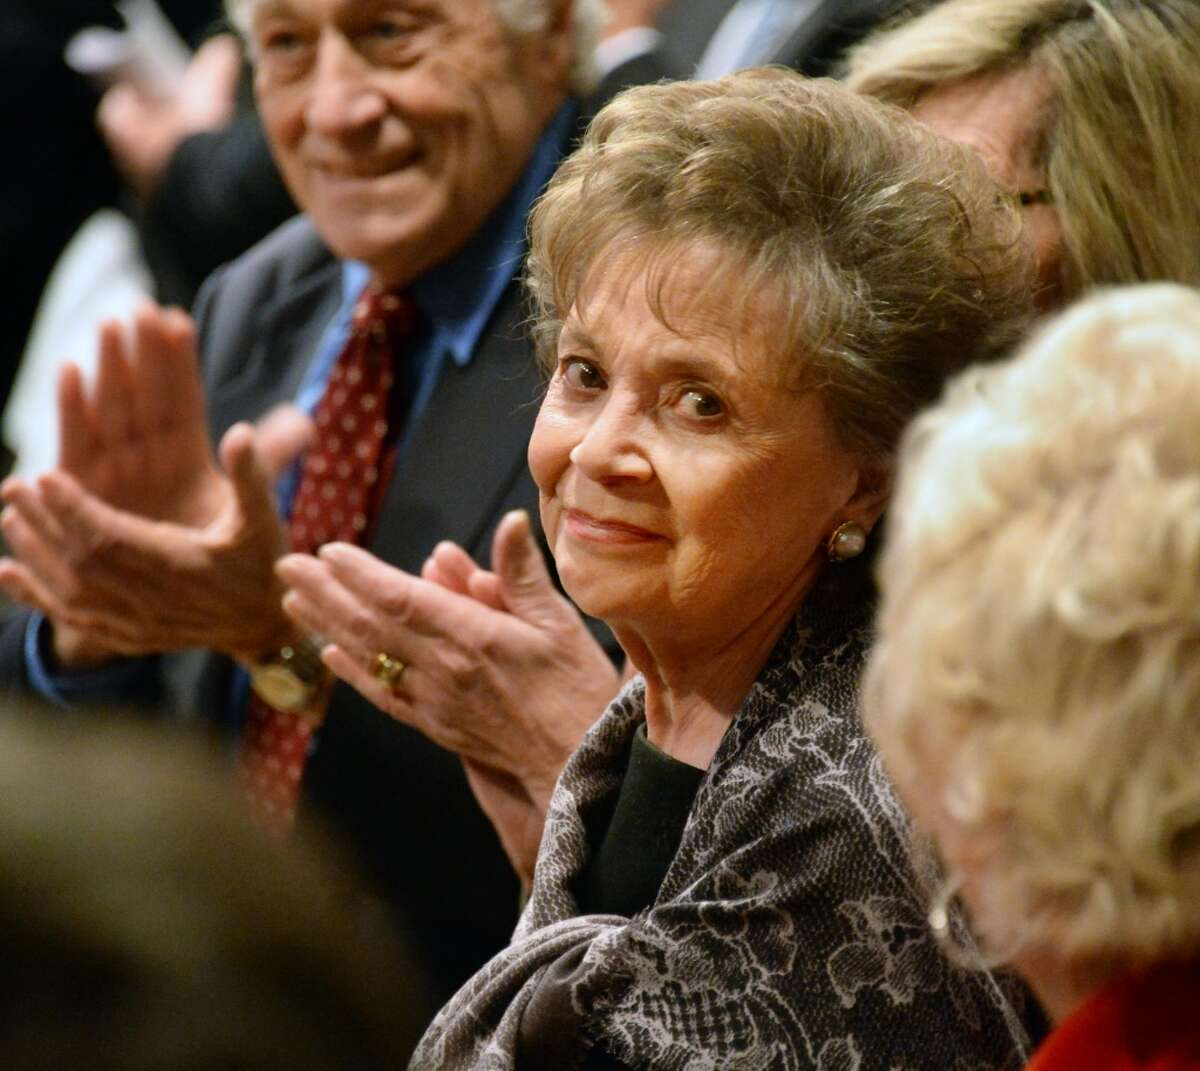 Gov. Andrew Cuomo's mother and former first lady Matilda Cuomo is applauded during her son's State of the State address and budget proposal Wednesday January 21, 2015, at the Empire State Plaza Convention Center in Albany, N.Y. (John Carl D'Annibale / Times Union)